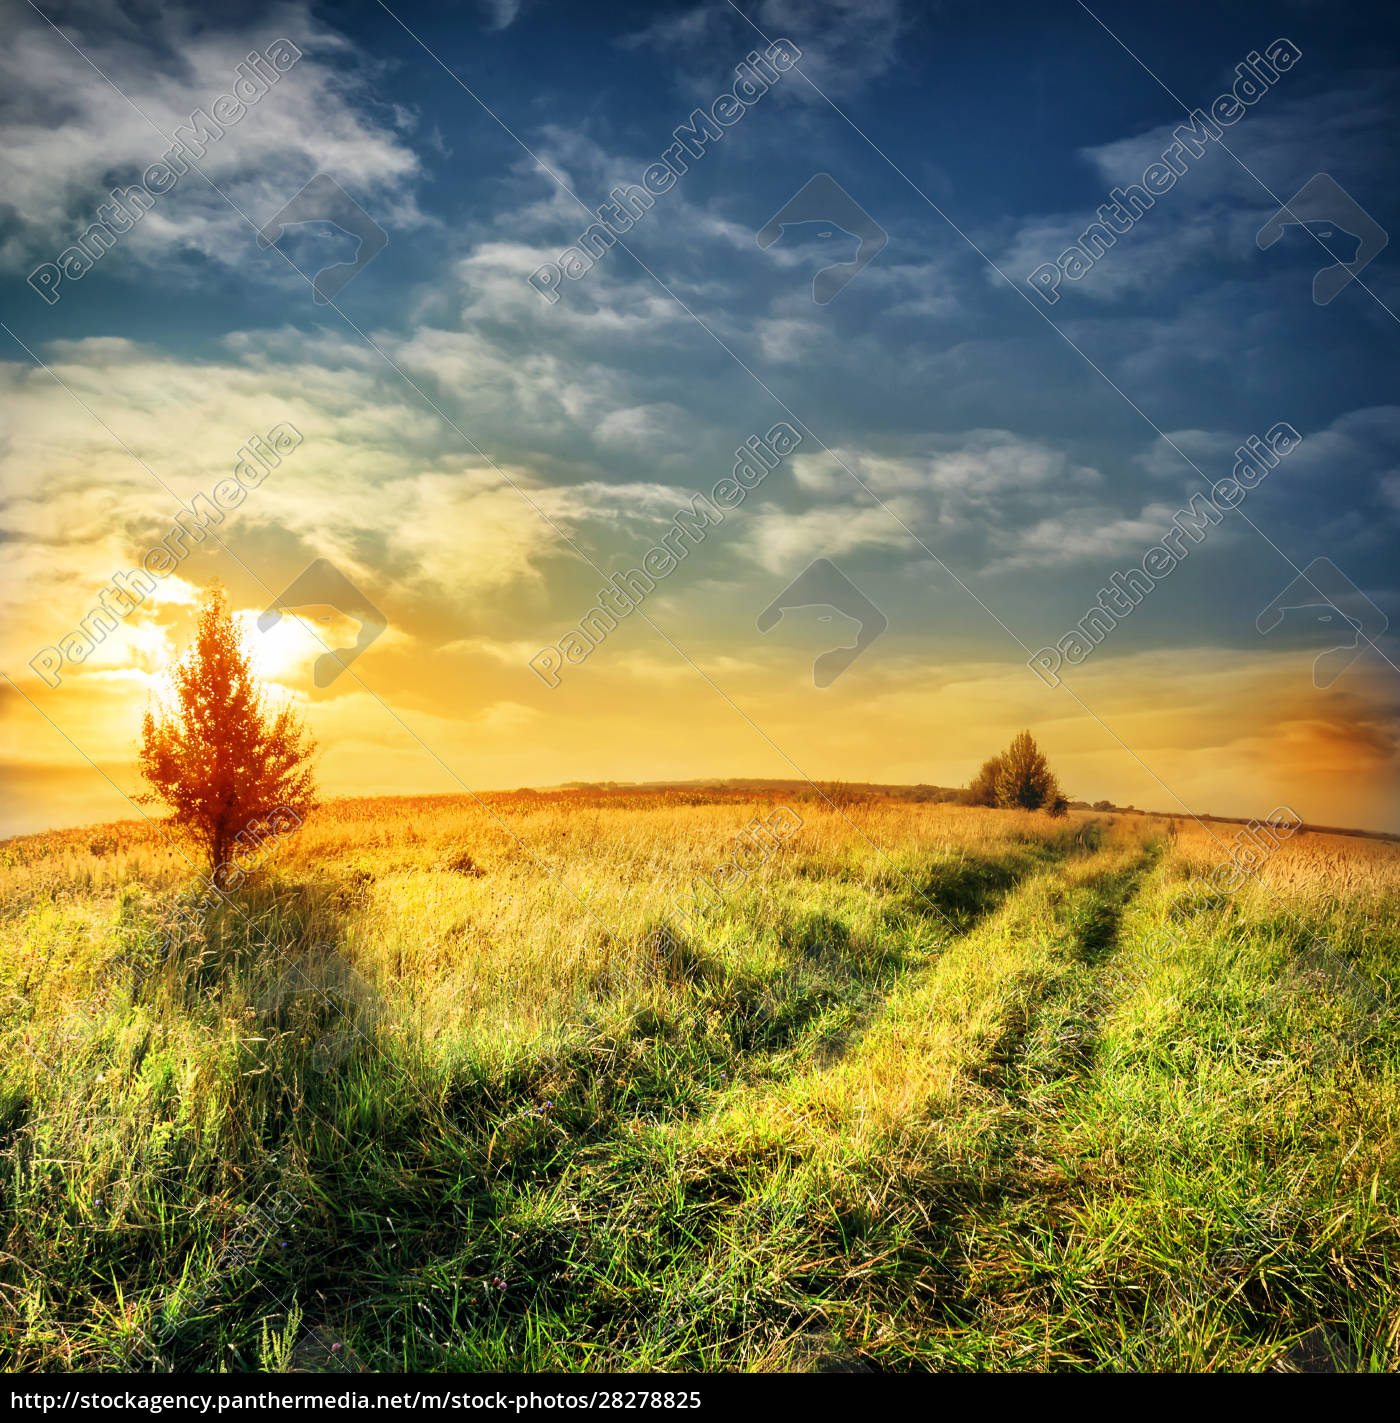 road, in, field, on, a, background - 28278825